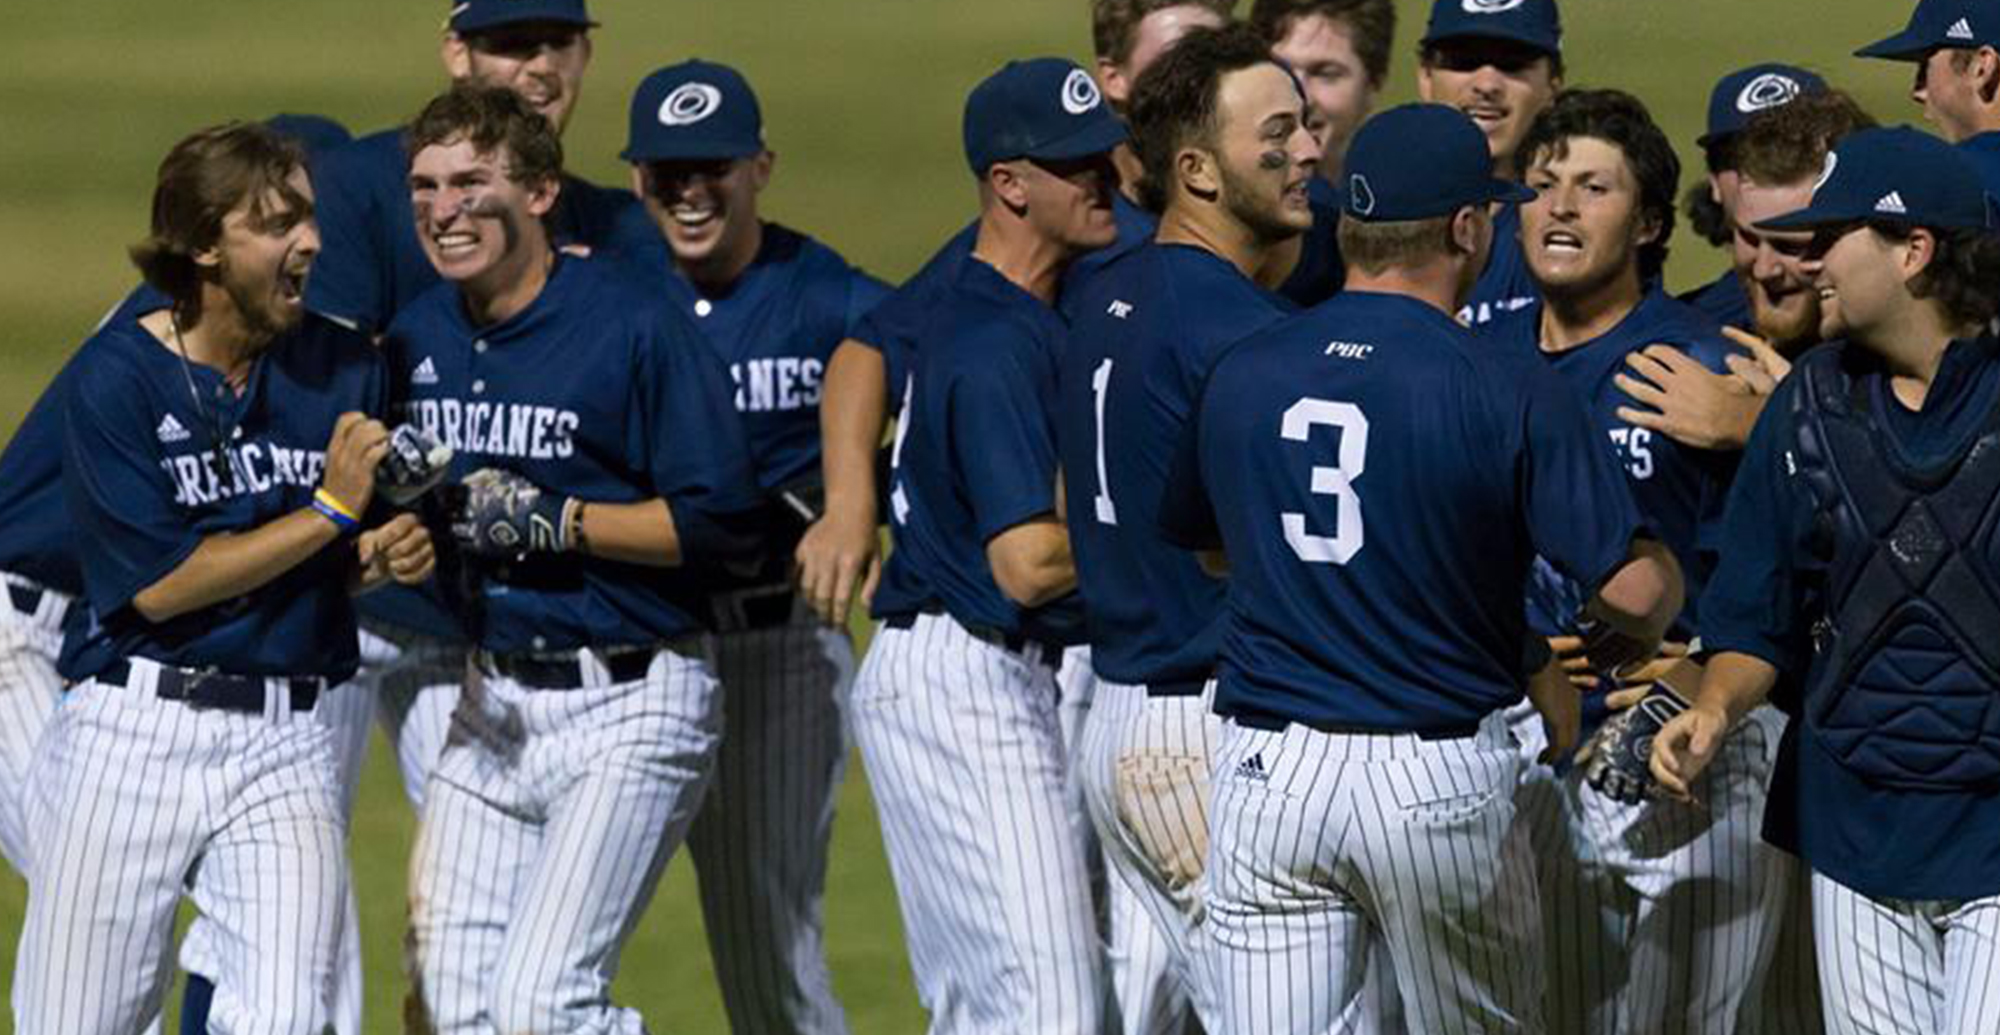 Baseball No. 8 Seed in PBC Tournament